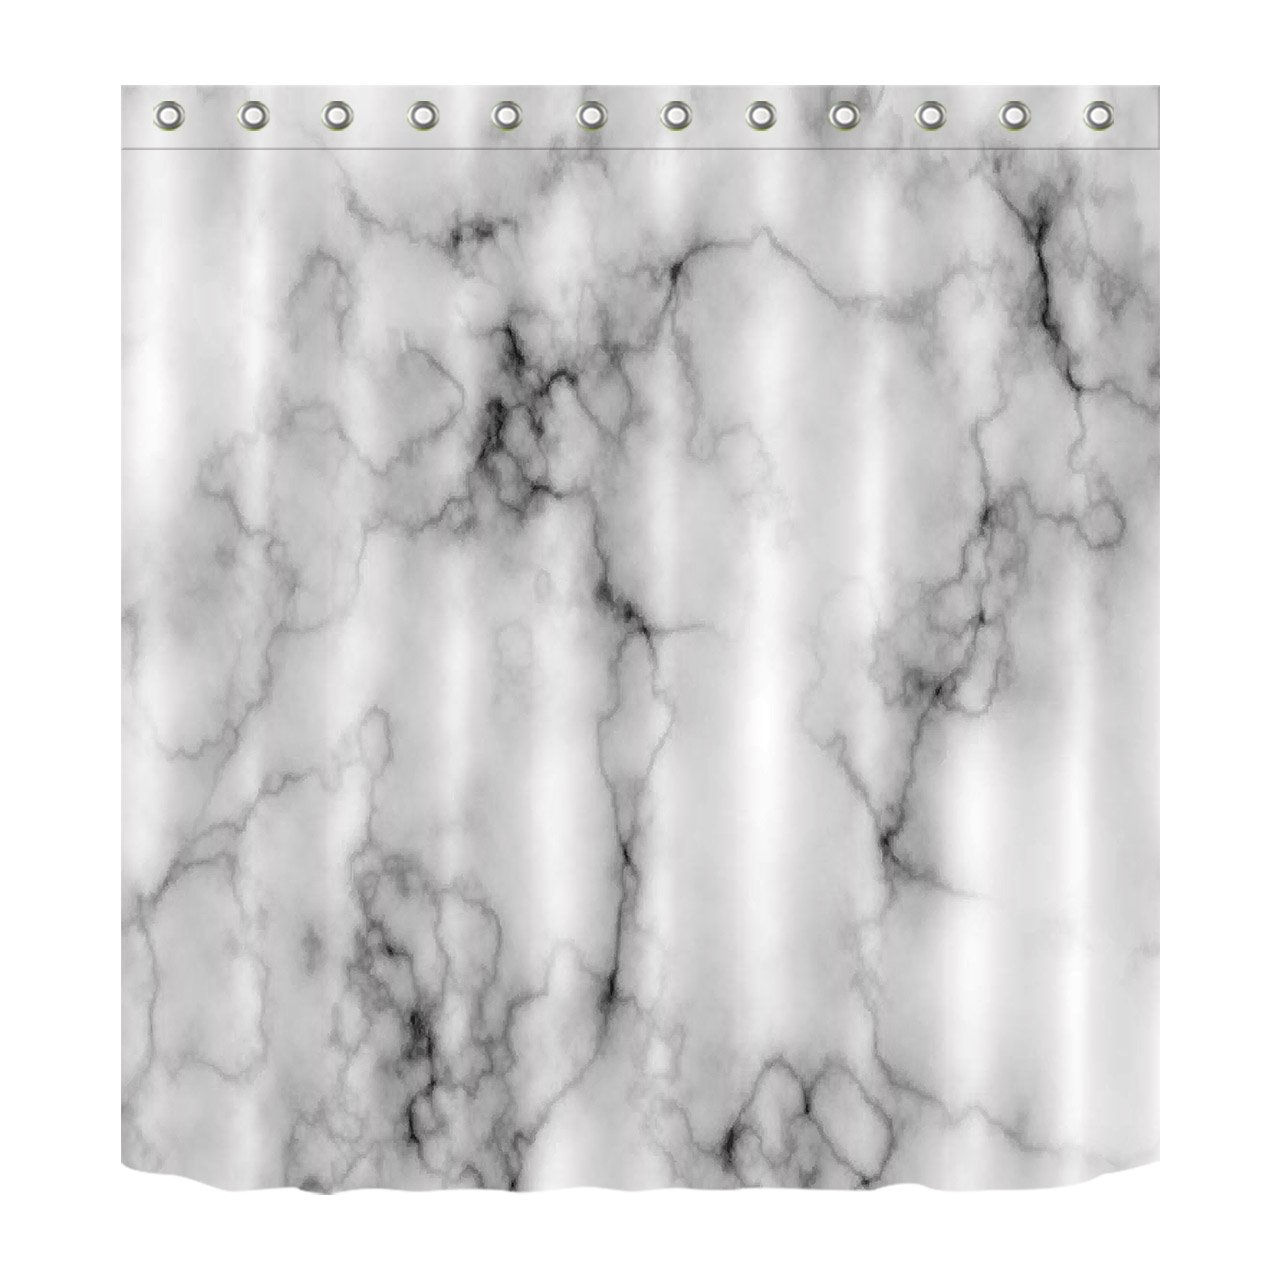 Concise Decoration Marble Texture Domolite Decor Luxury Shower Curtain Polyester Fabric 3D Digital Printing 60x72 Mildew Resistant Black Lines Spread Gray Bathroom Bath Curtain Liner Hooks YLHGY-150-180